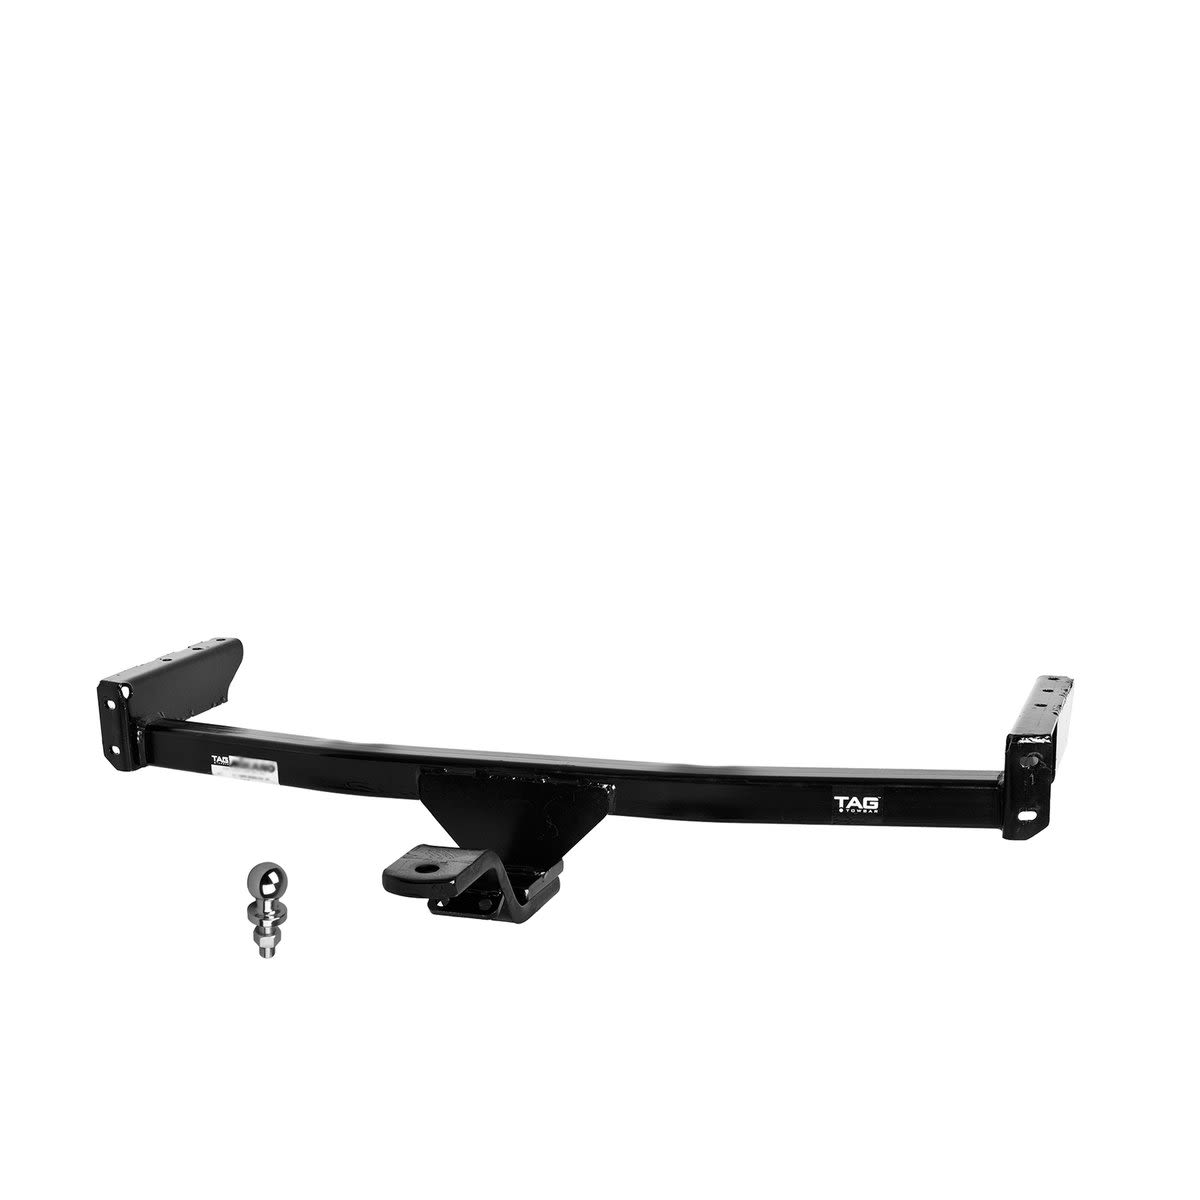 TAG Light Duty Towbar to suit Toyota Camry (07/2006 - 09/2011), Aurion (07/2006 - 09/2011)